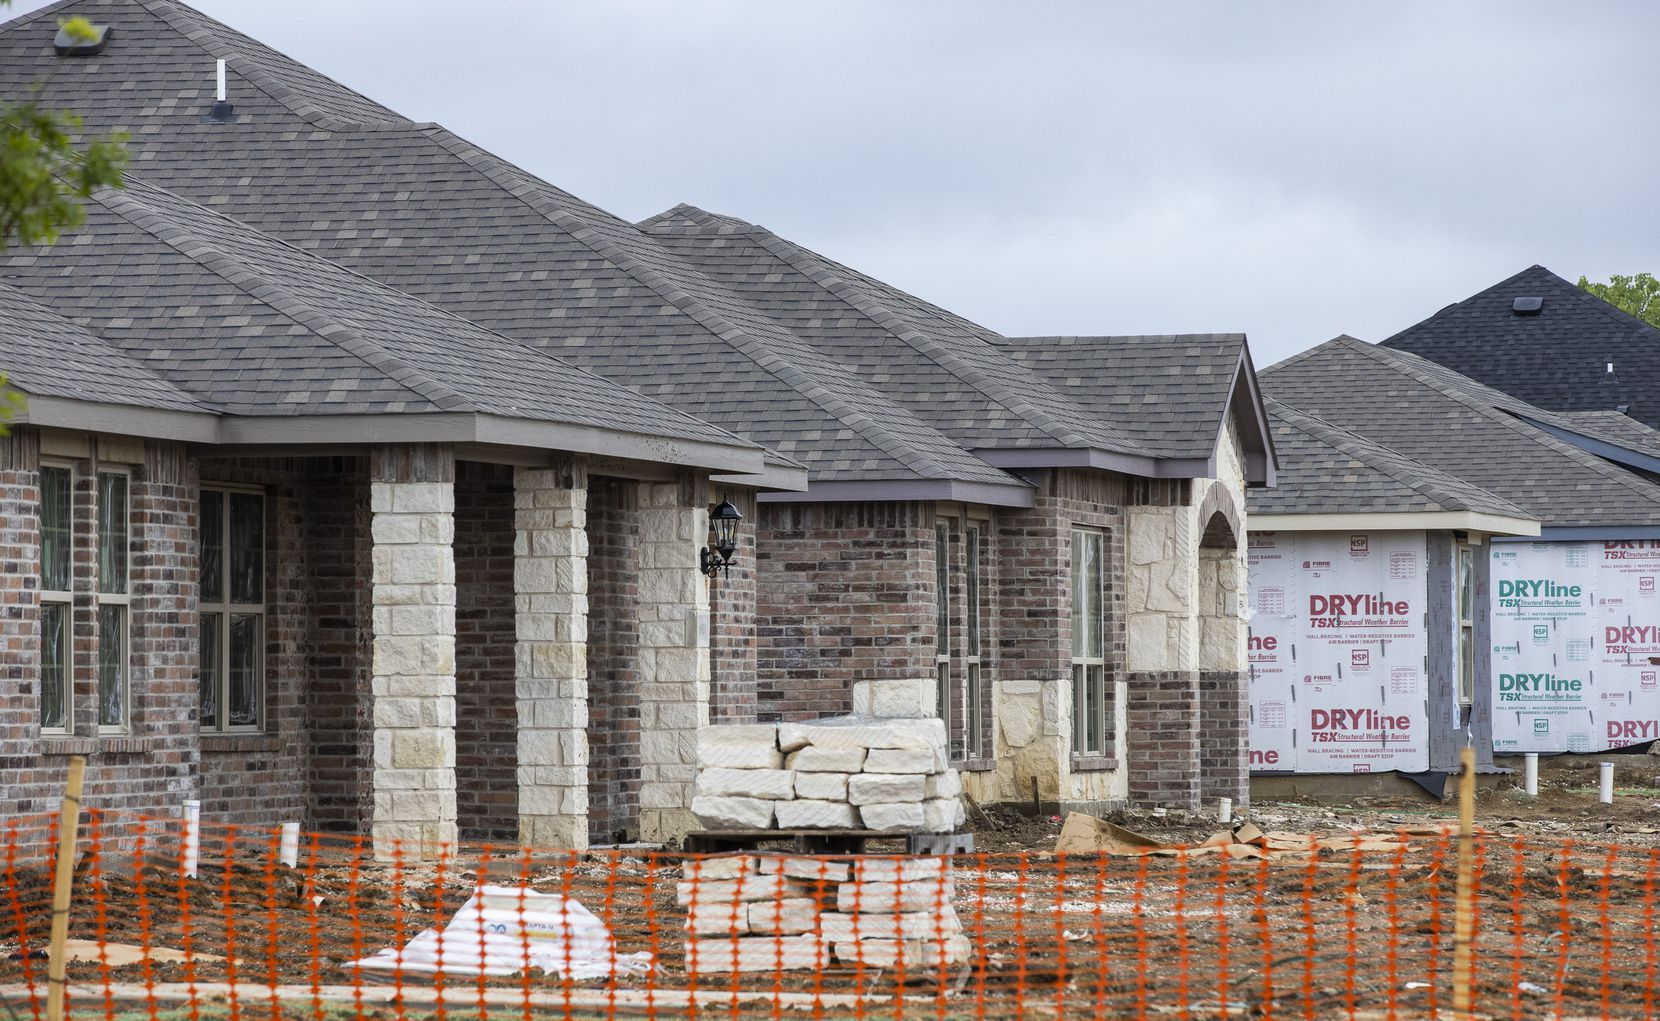 Construction was underway last month on houses in Kensington Valley by Camden Homes in southeast Dallas. The community is near the intersection of Interstates 635 and 20 and has 112 homes.